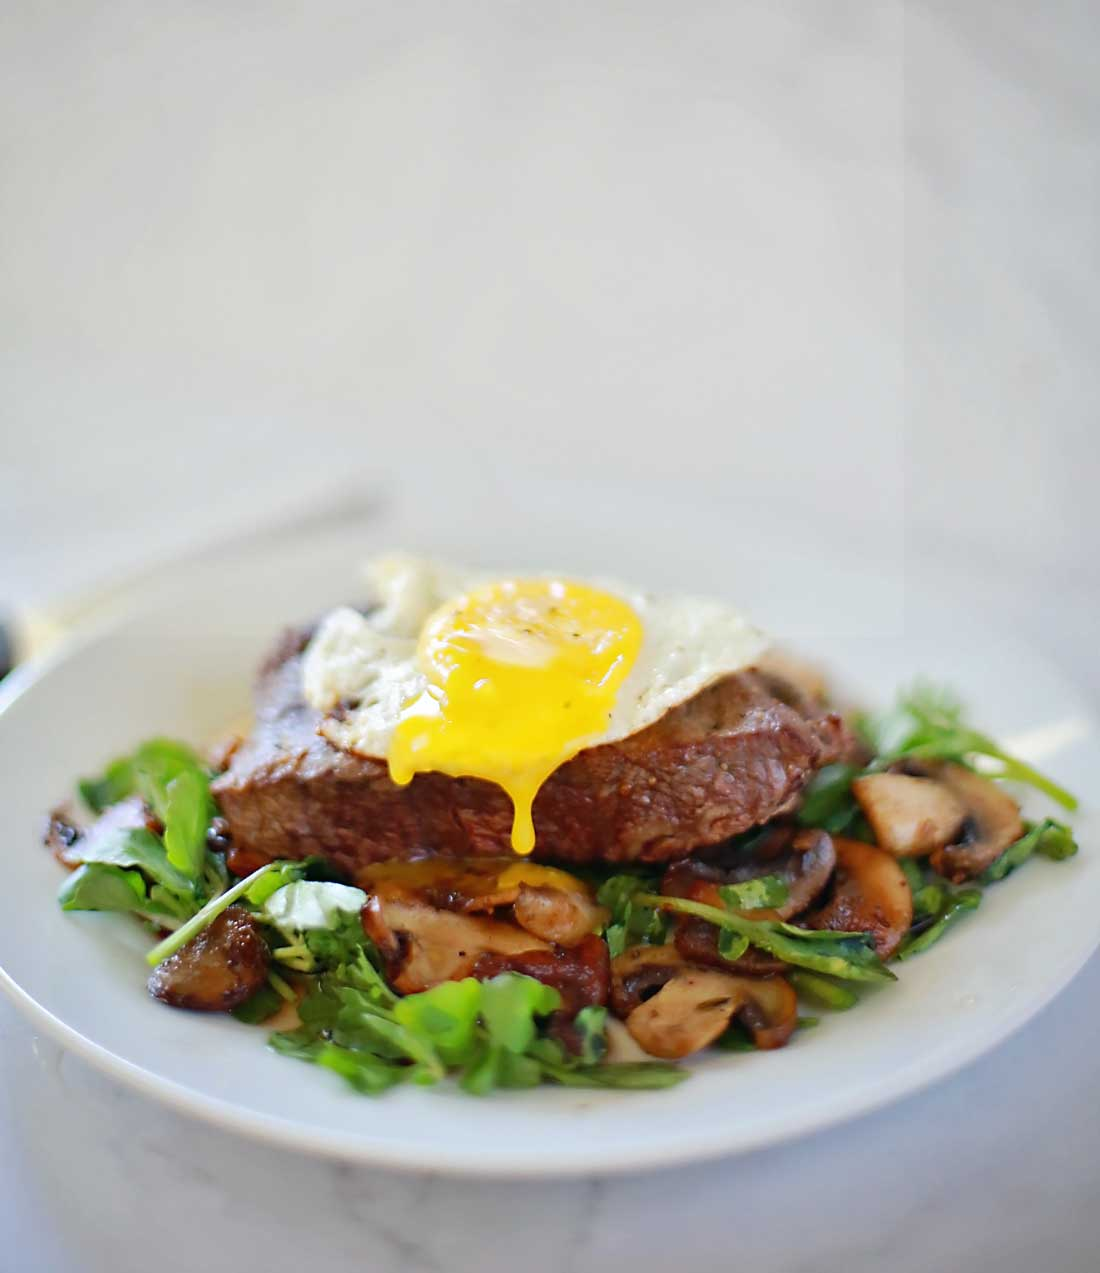 Steak and Eggs with mushrooms on a watercress salad! Sooo good and only takes ten minutes!!!